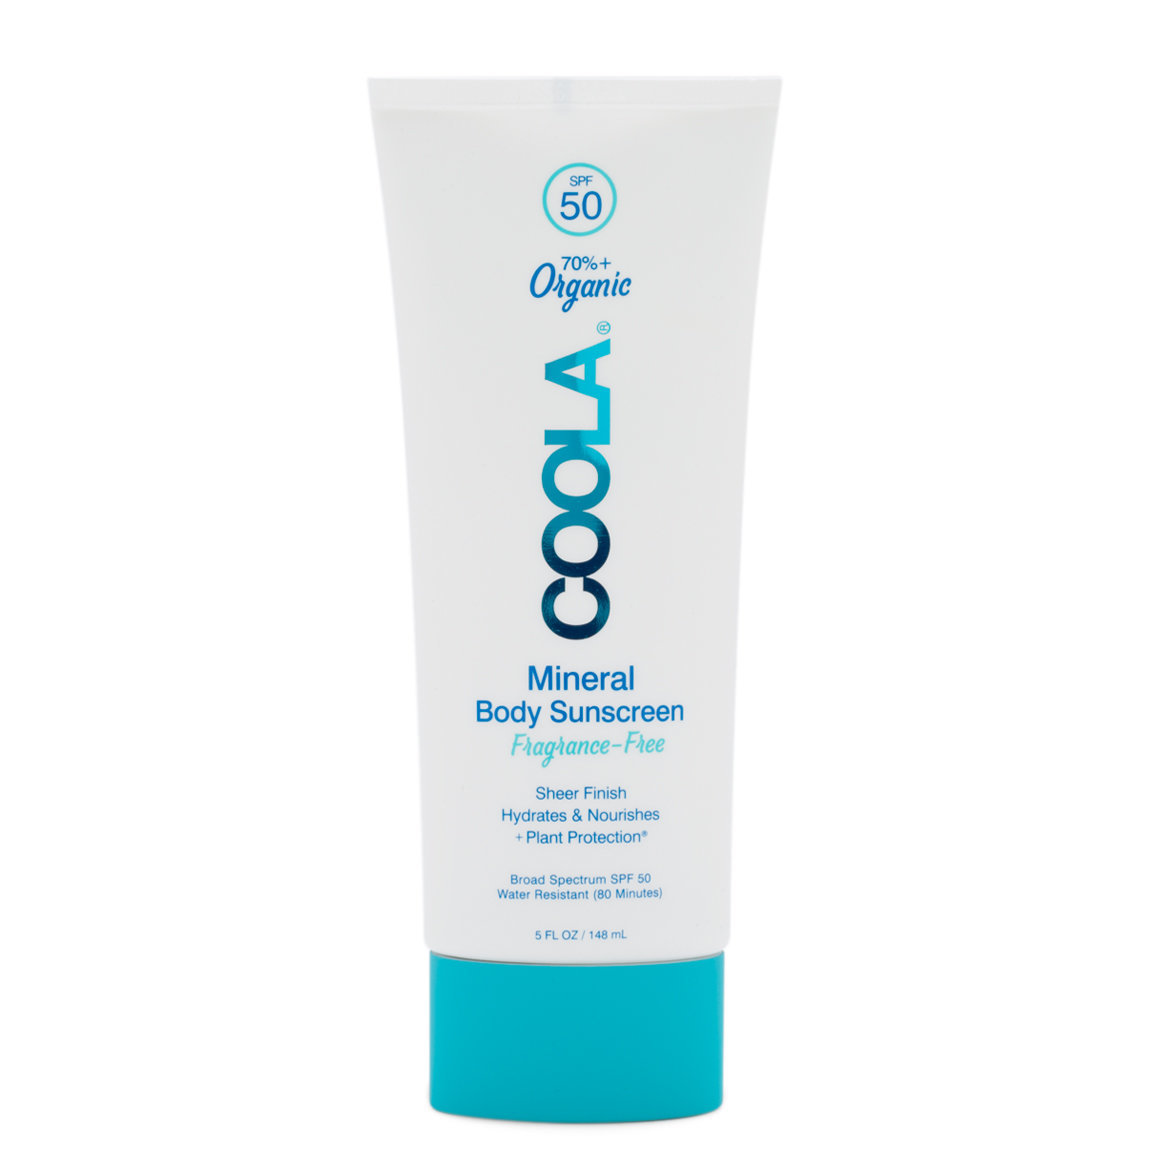 COOLA Mineral Body Sunscreen Lotion SPF 50 product swatch.